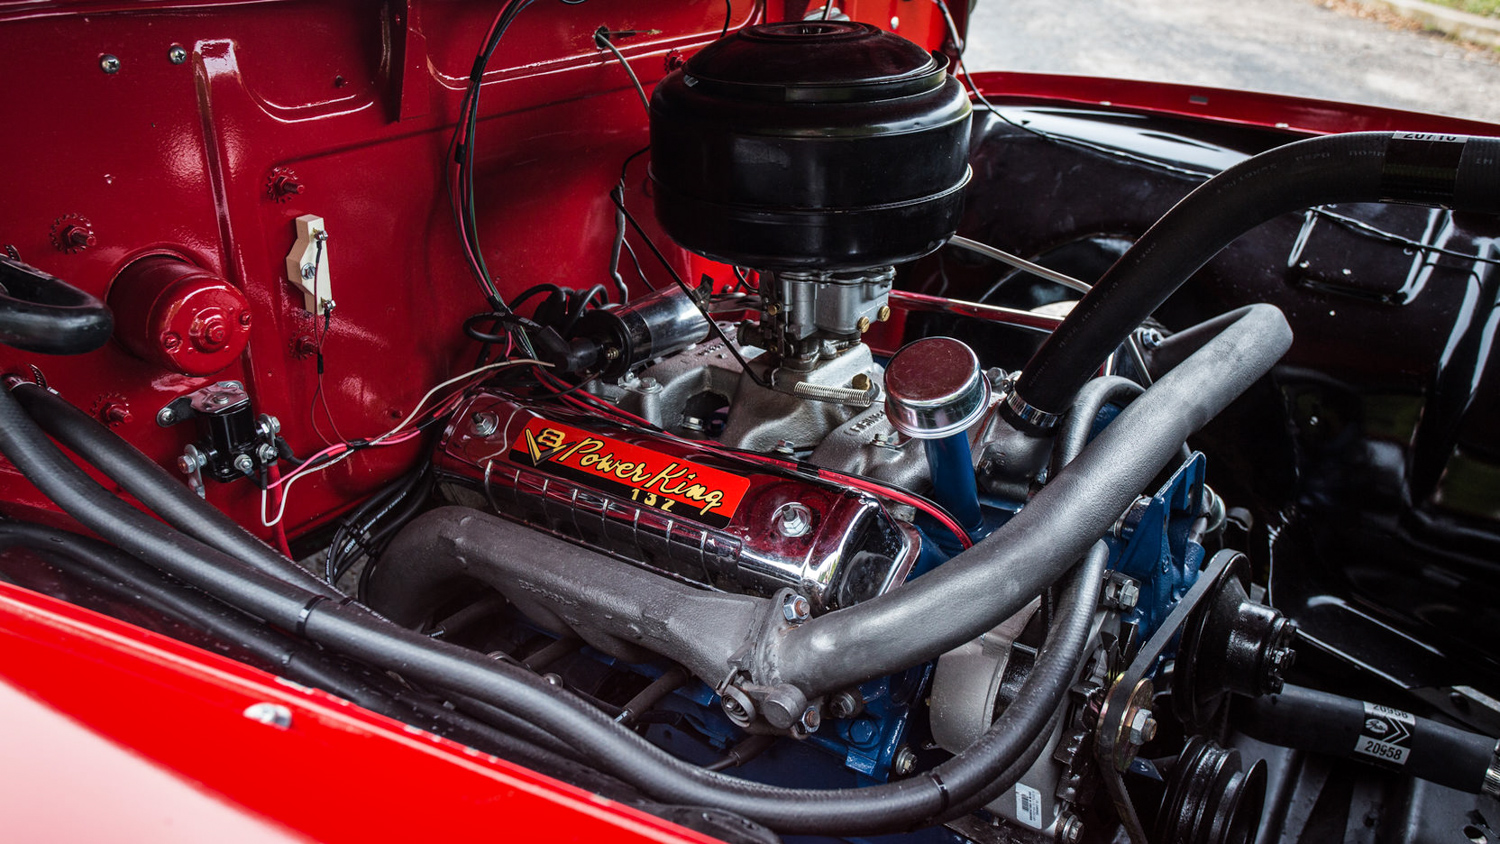 1955 Ford F100 power king y block v8